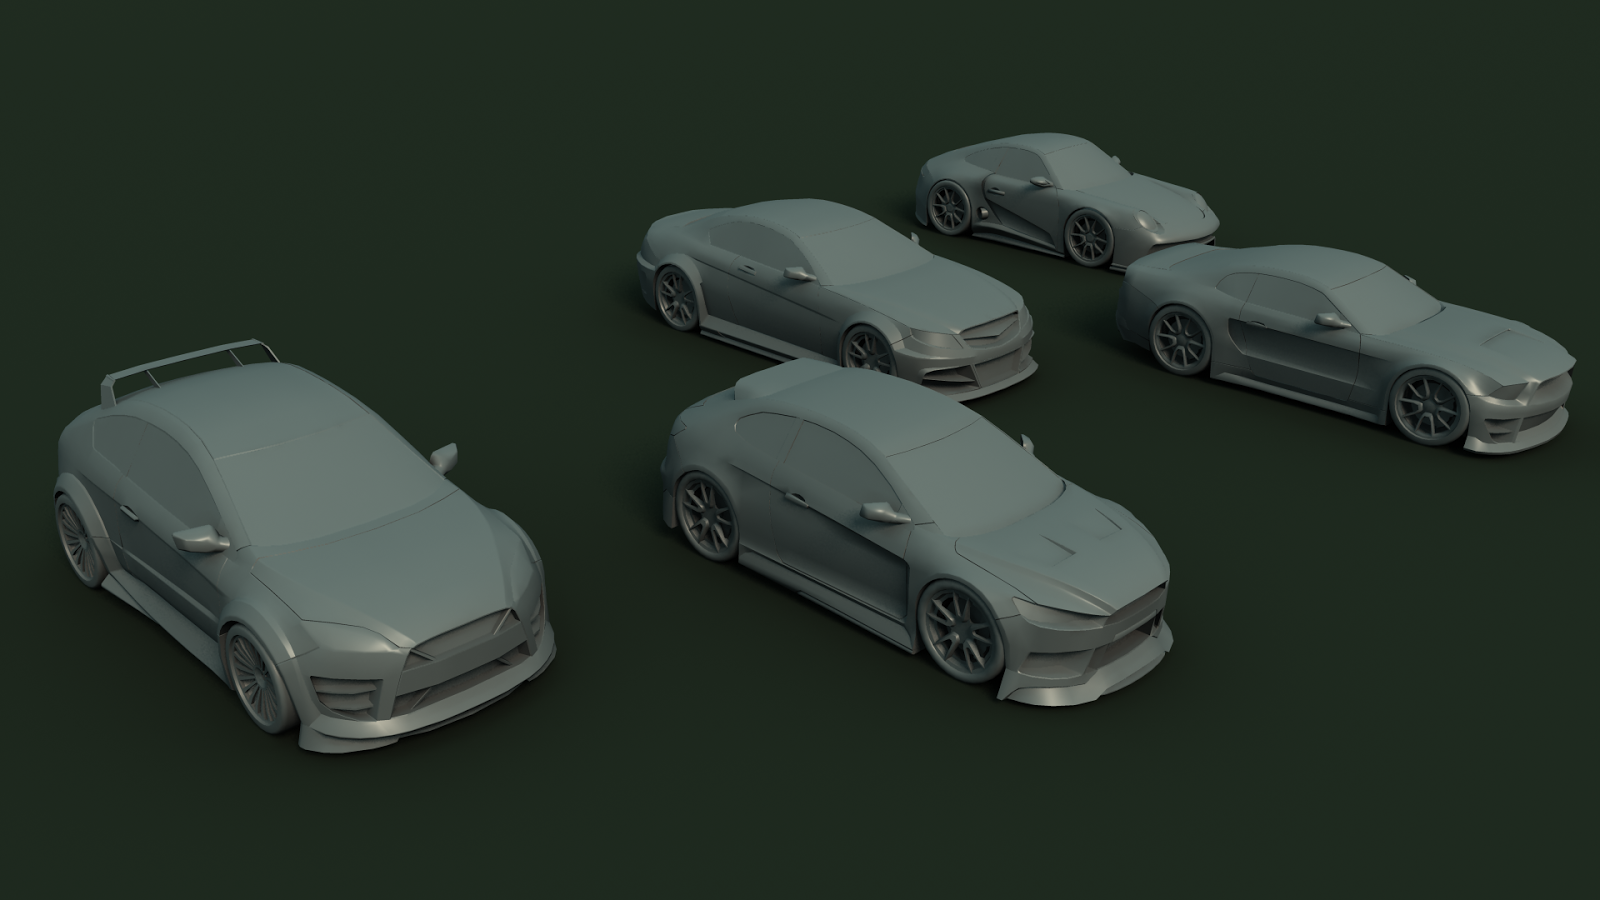 cars_02.png